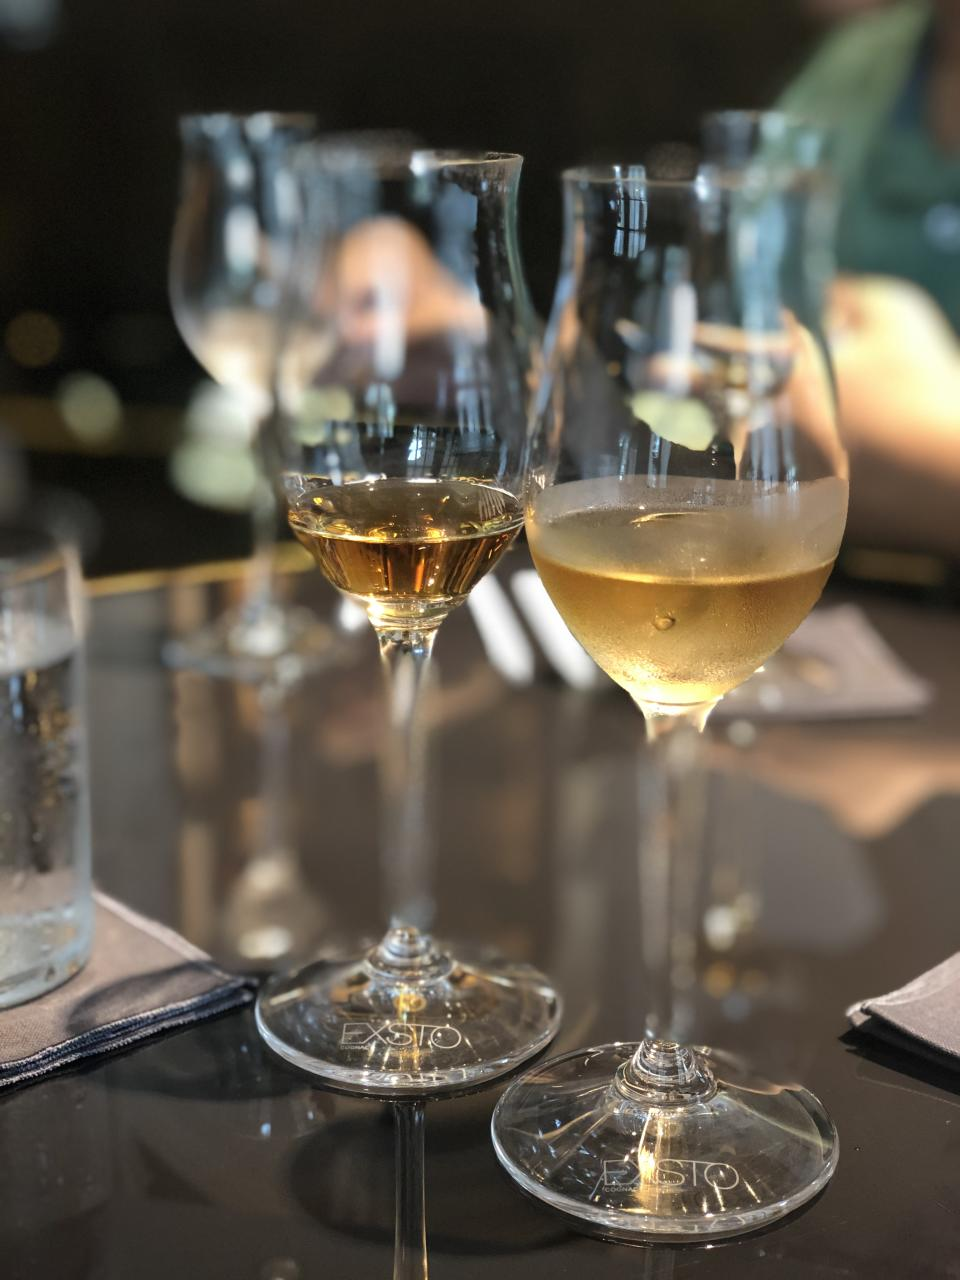 (From left to right) Sampling the Exsto Élixir, which contains 40% alcohol content, on its own and with an ice-cube. Adding ice-cubes will dilute the cognac and reduce the alcohol percentage, which in turn reveals the aromas while making the taste more refreshing. (PHOTO: Sheila Chiang/Yahoo Lifestyle Singapore)